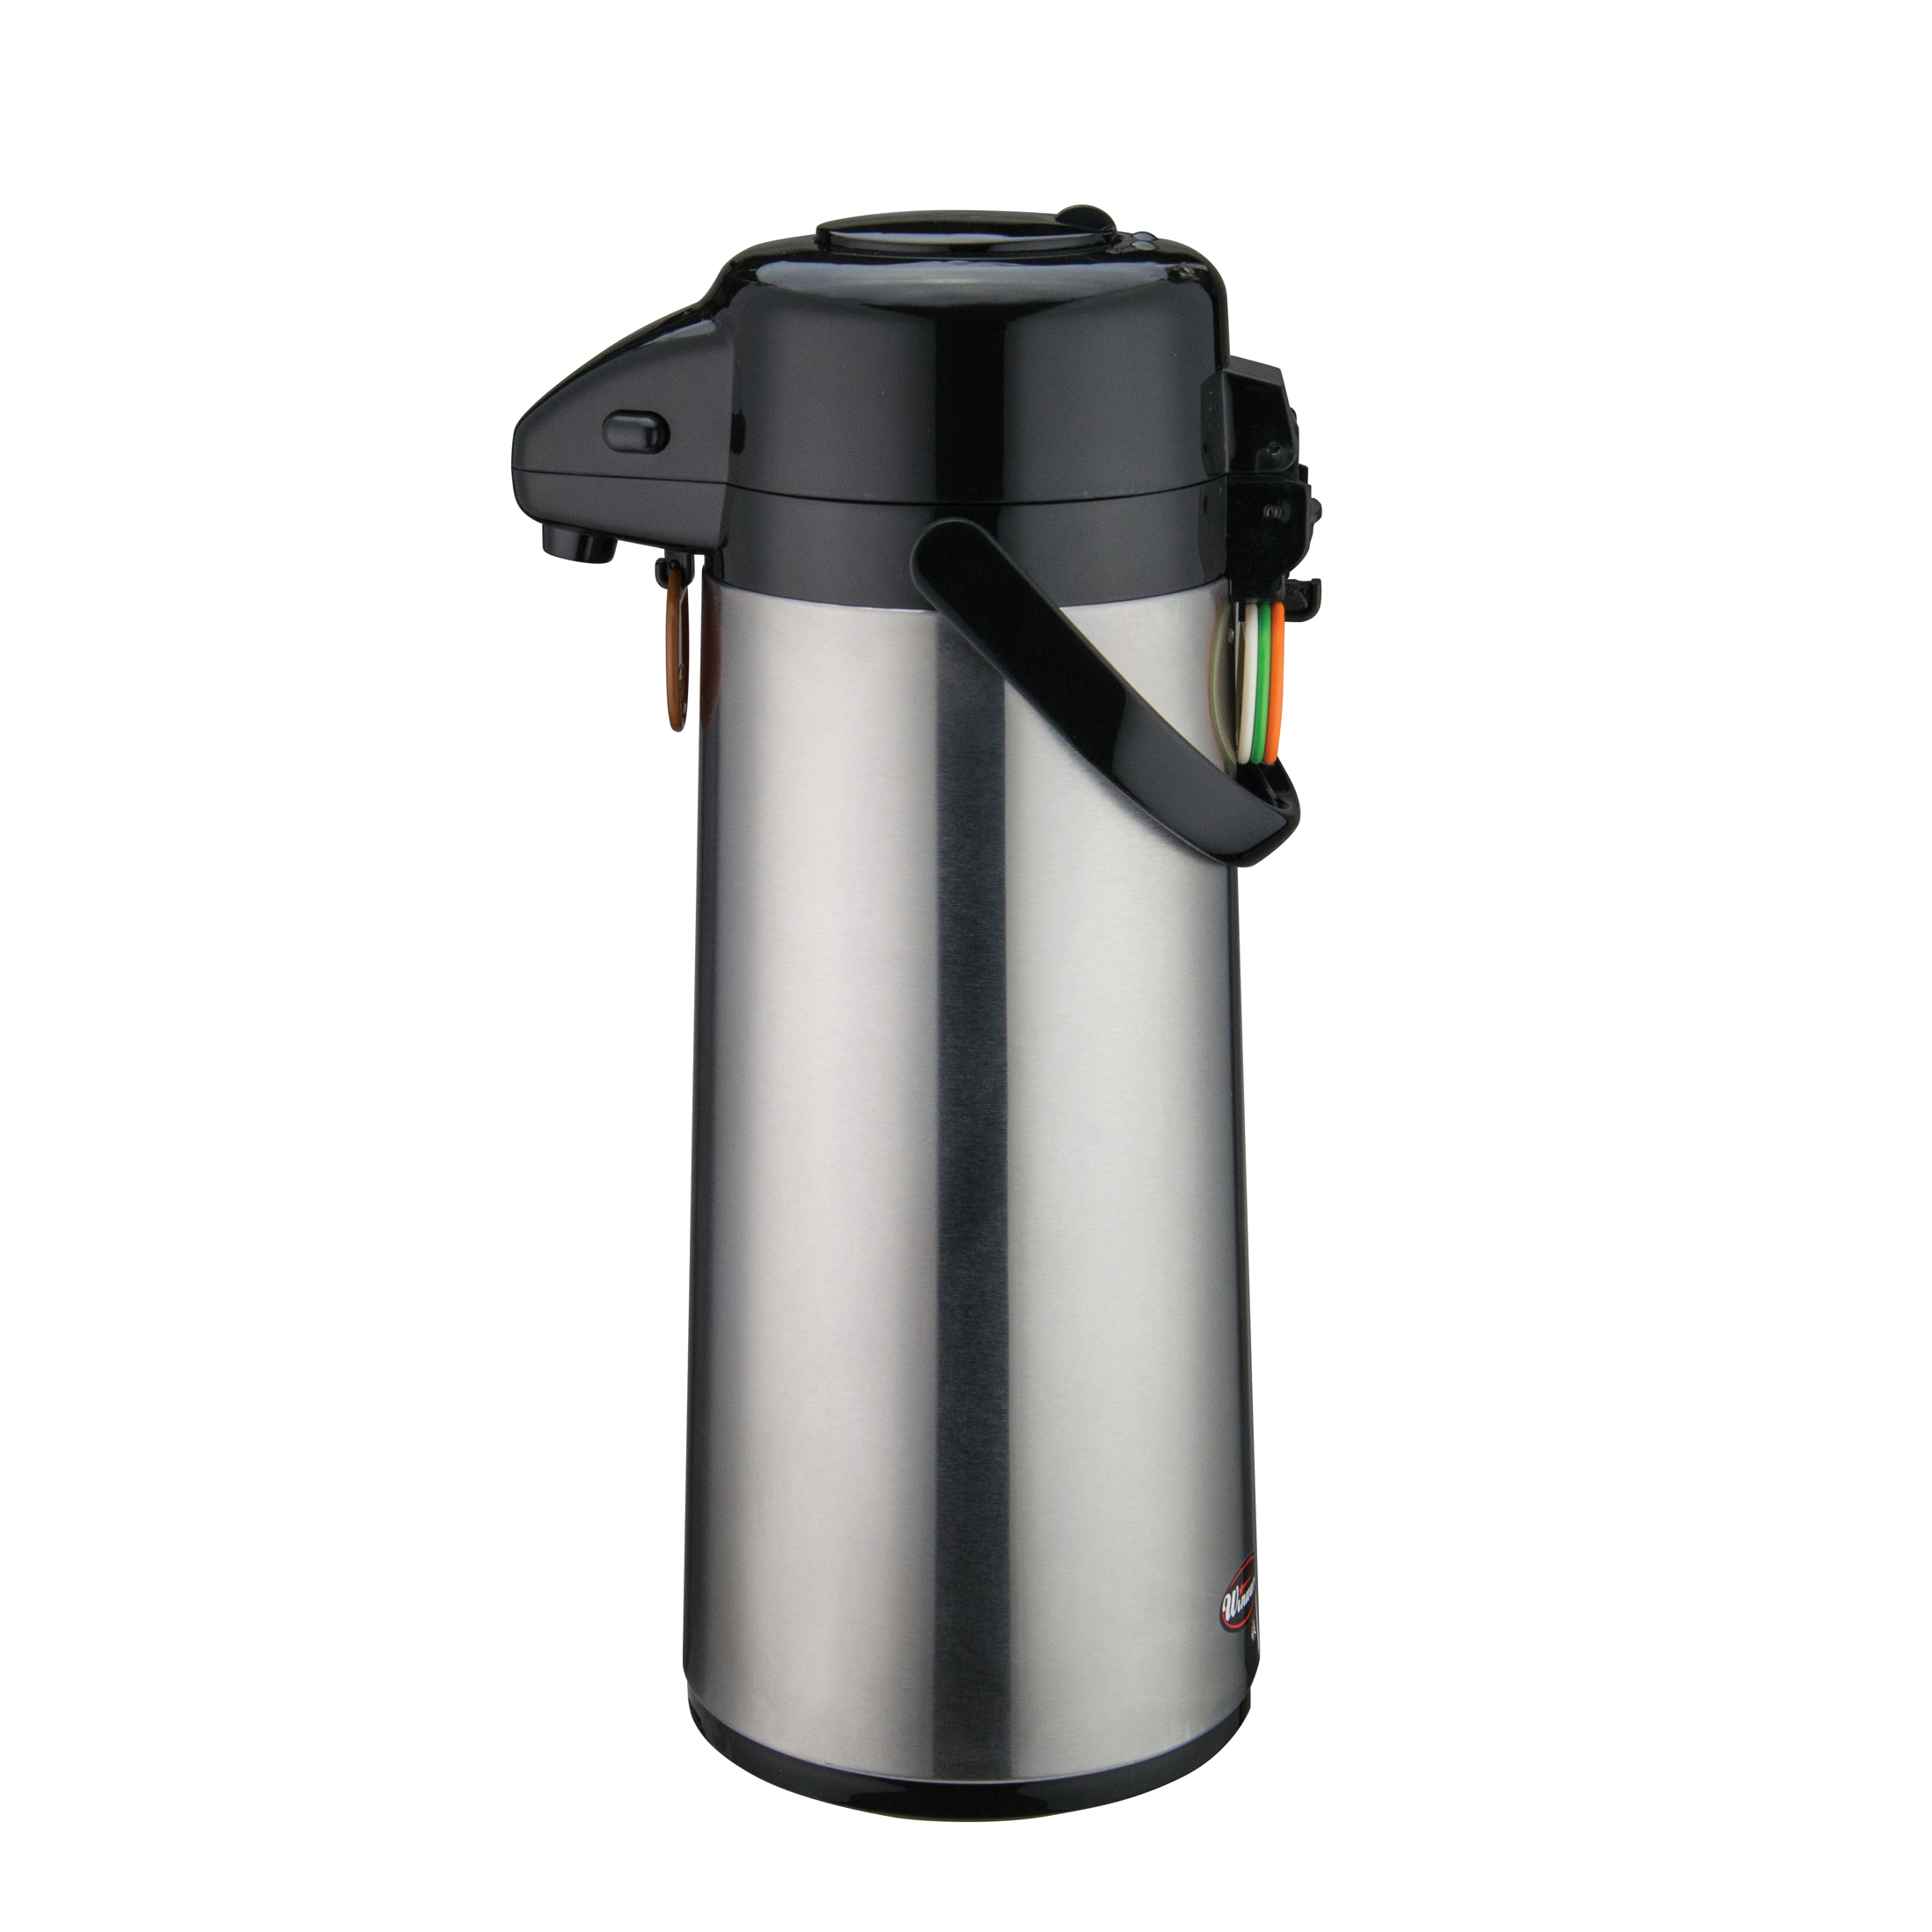 Winco AP-525 airpot